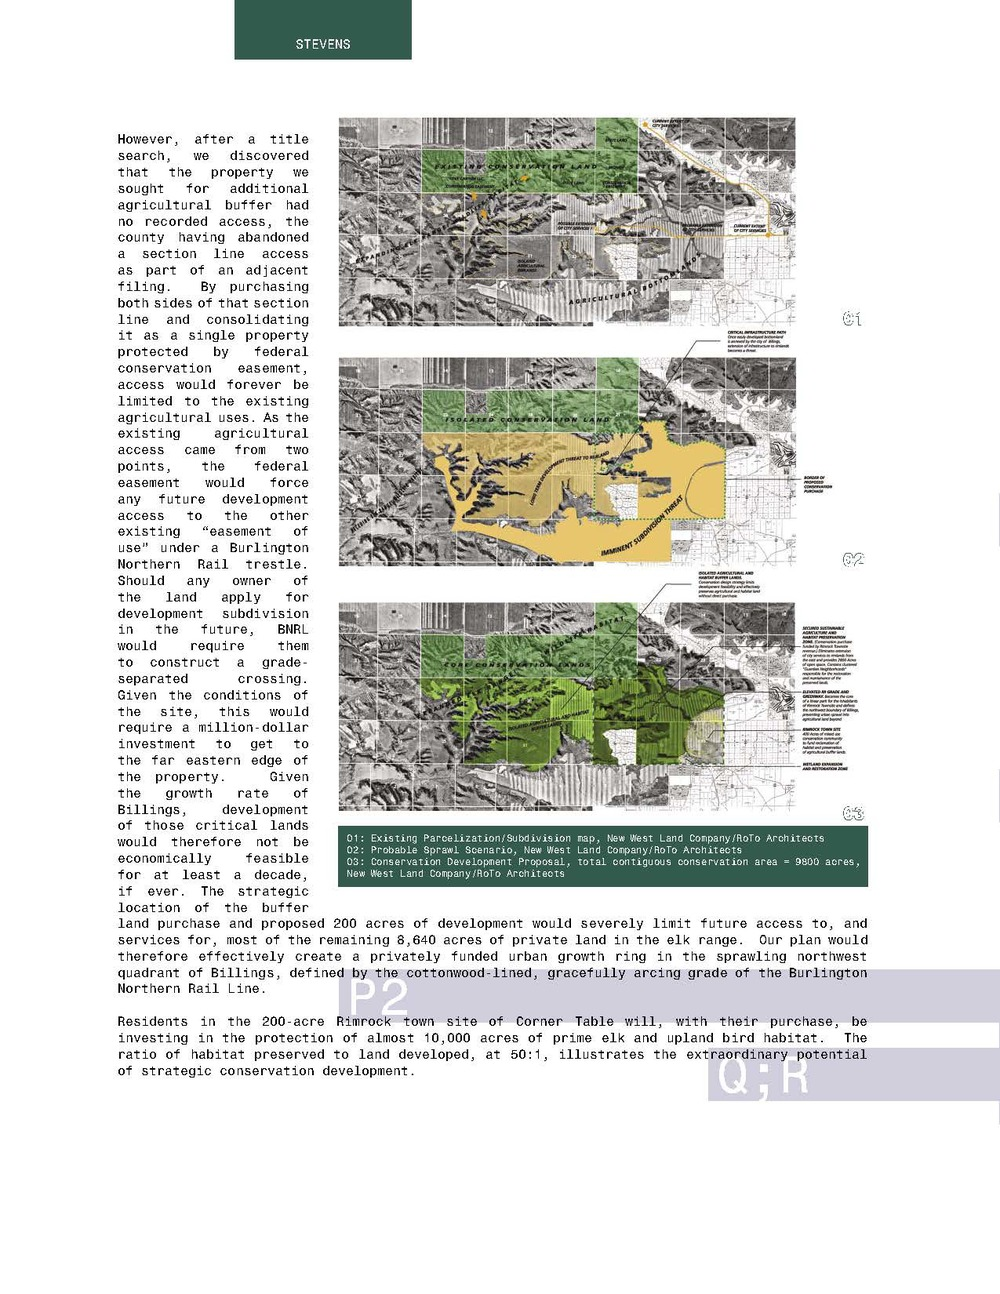 UT New West Land Co Article_Page_19.jpg